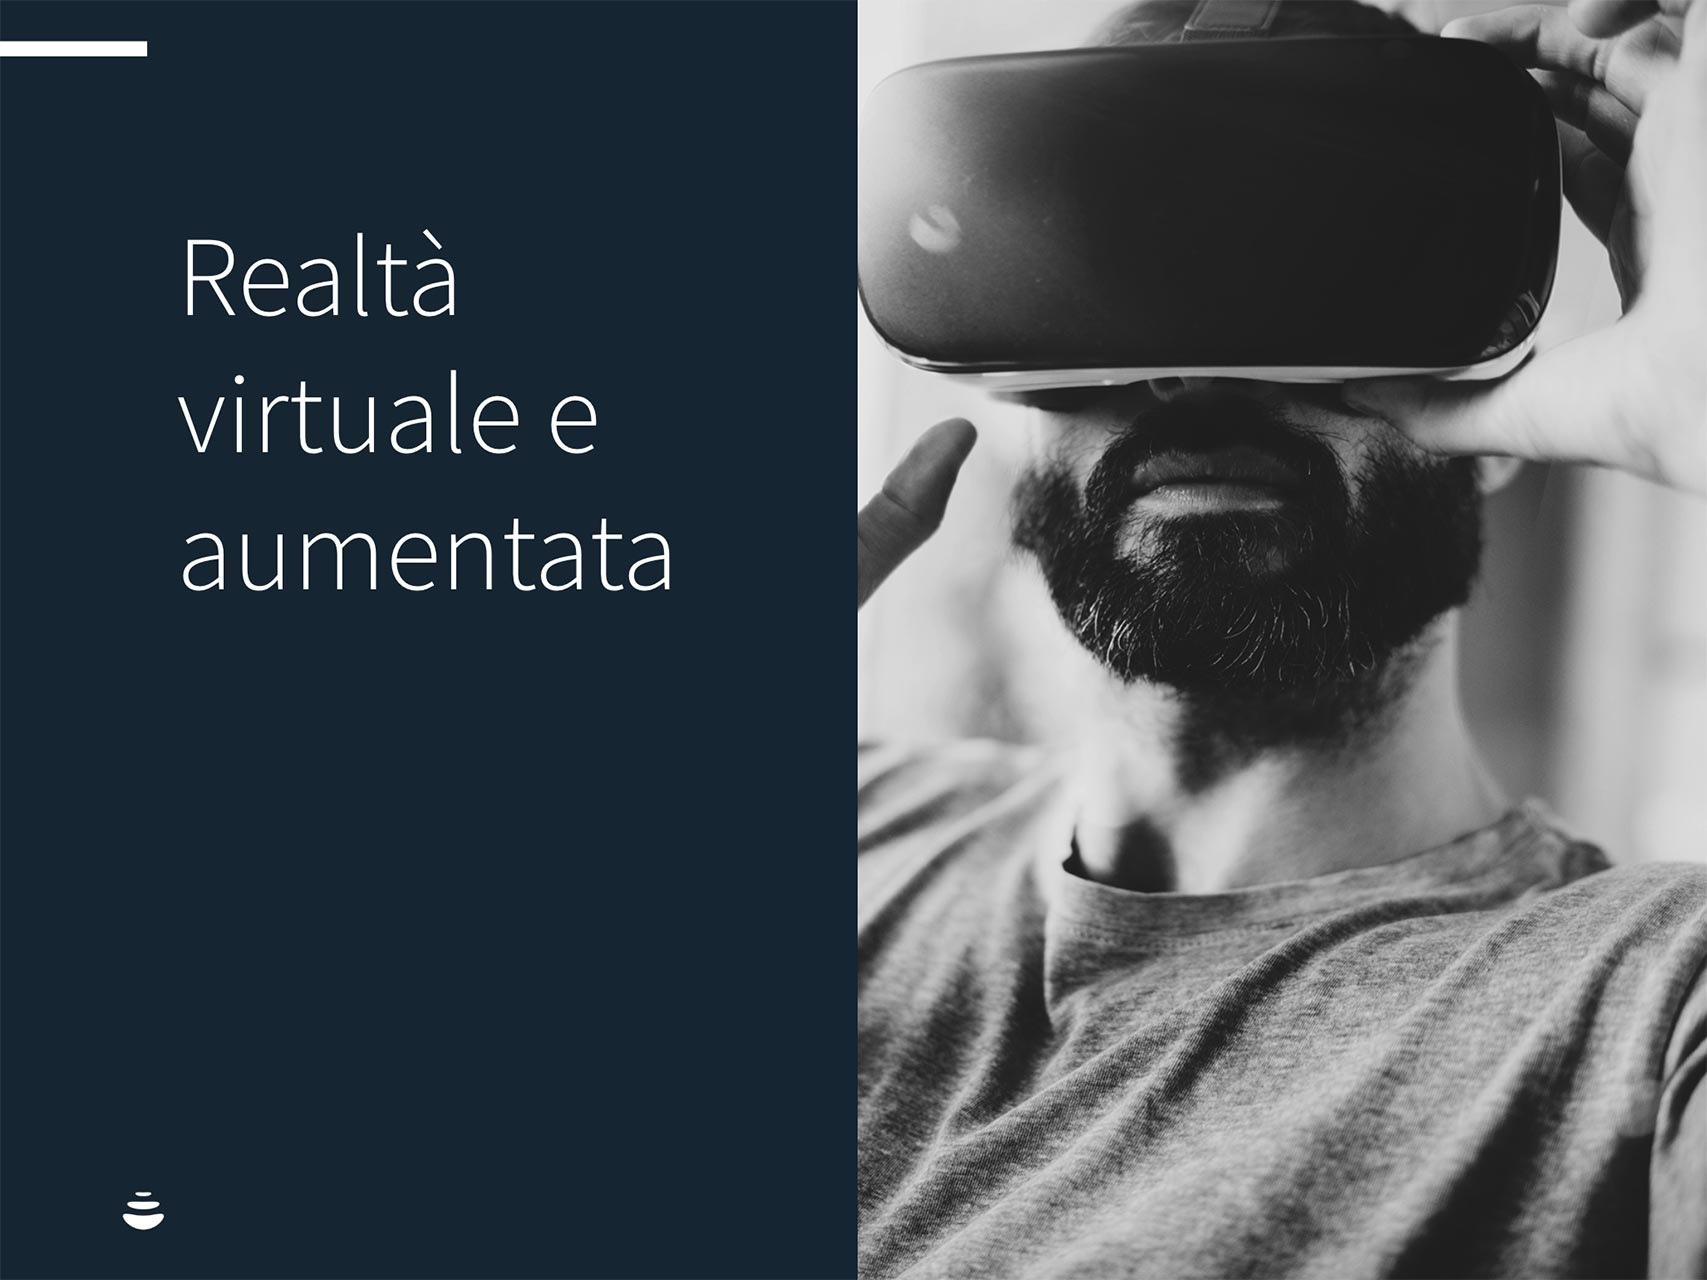 marketing trend 2019 2020, realtà virtuale e aumentata